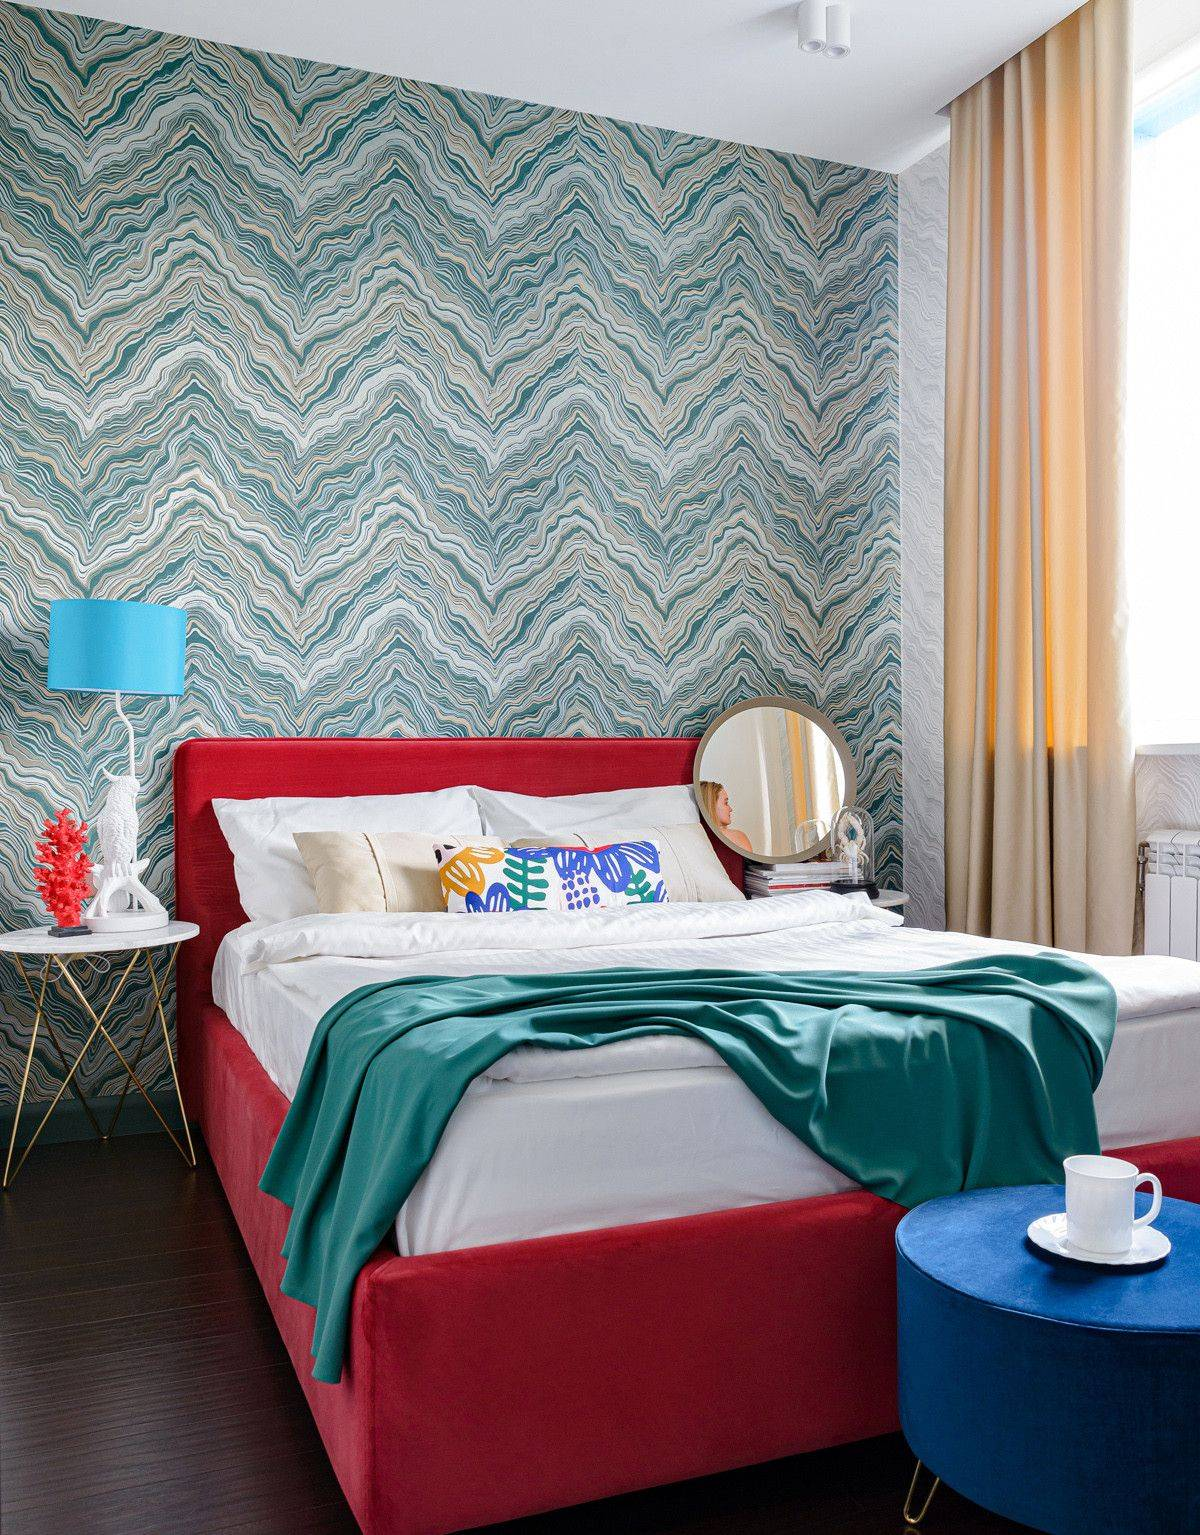 Wallpaper-is-an-easy-way-to-add-pattern-to-the-bedroom-without-opting-for-a-mojor-makeover-19089